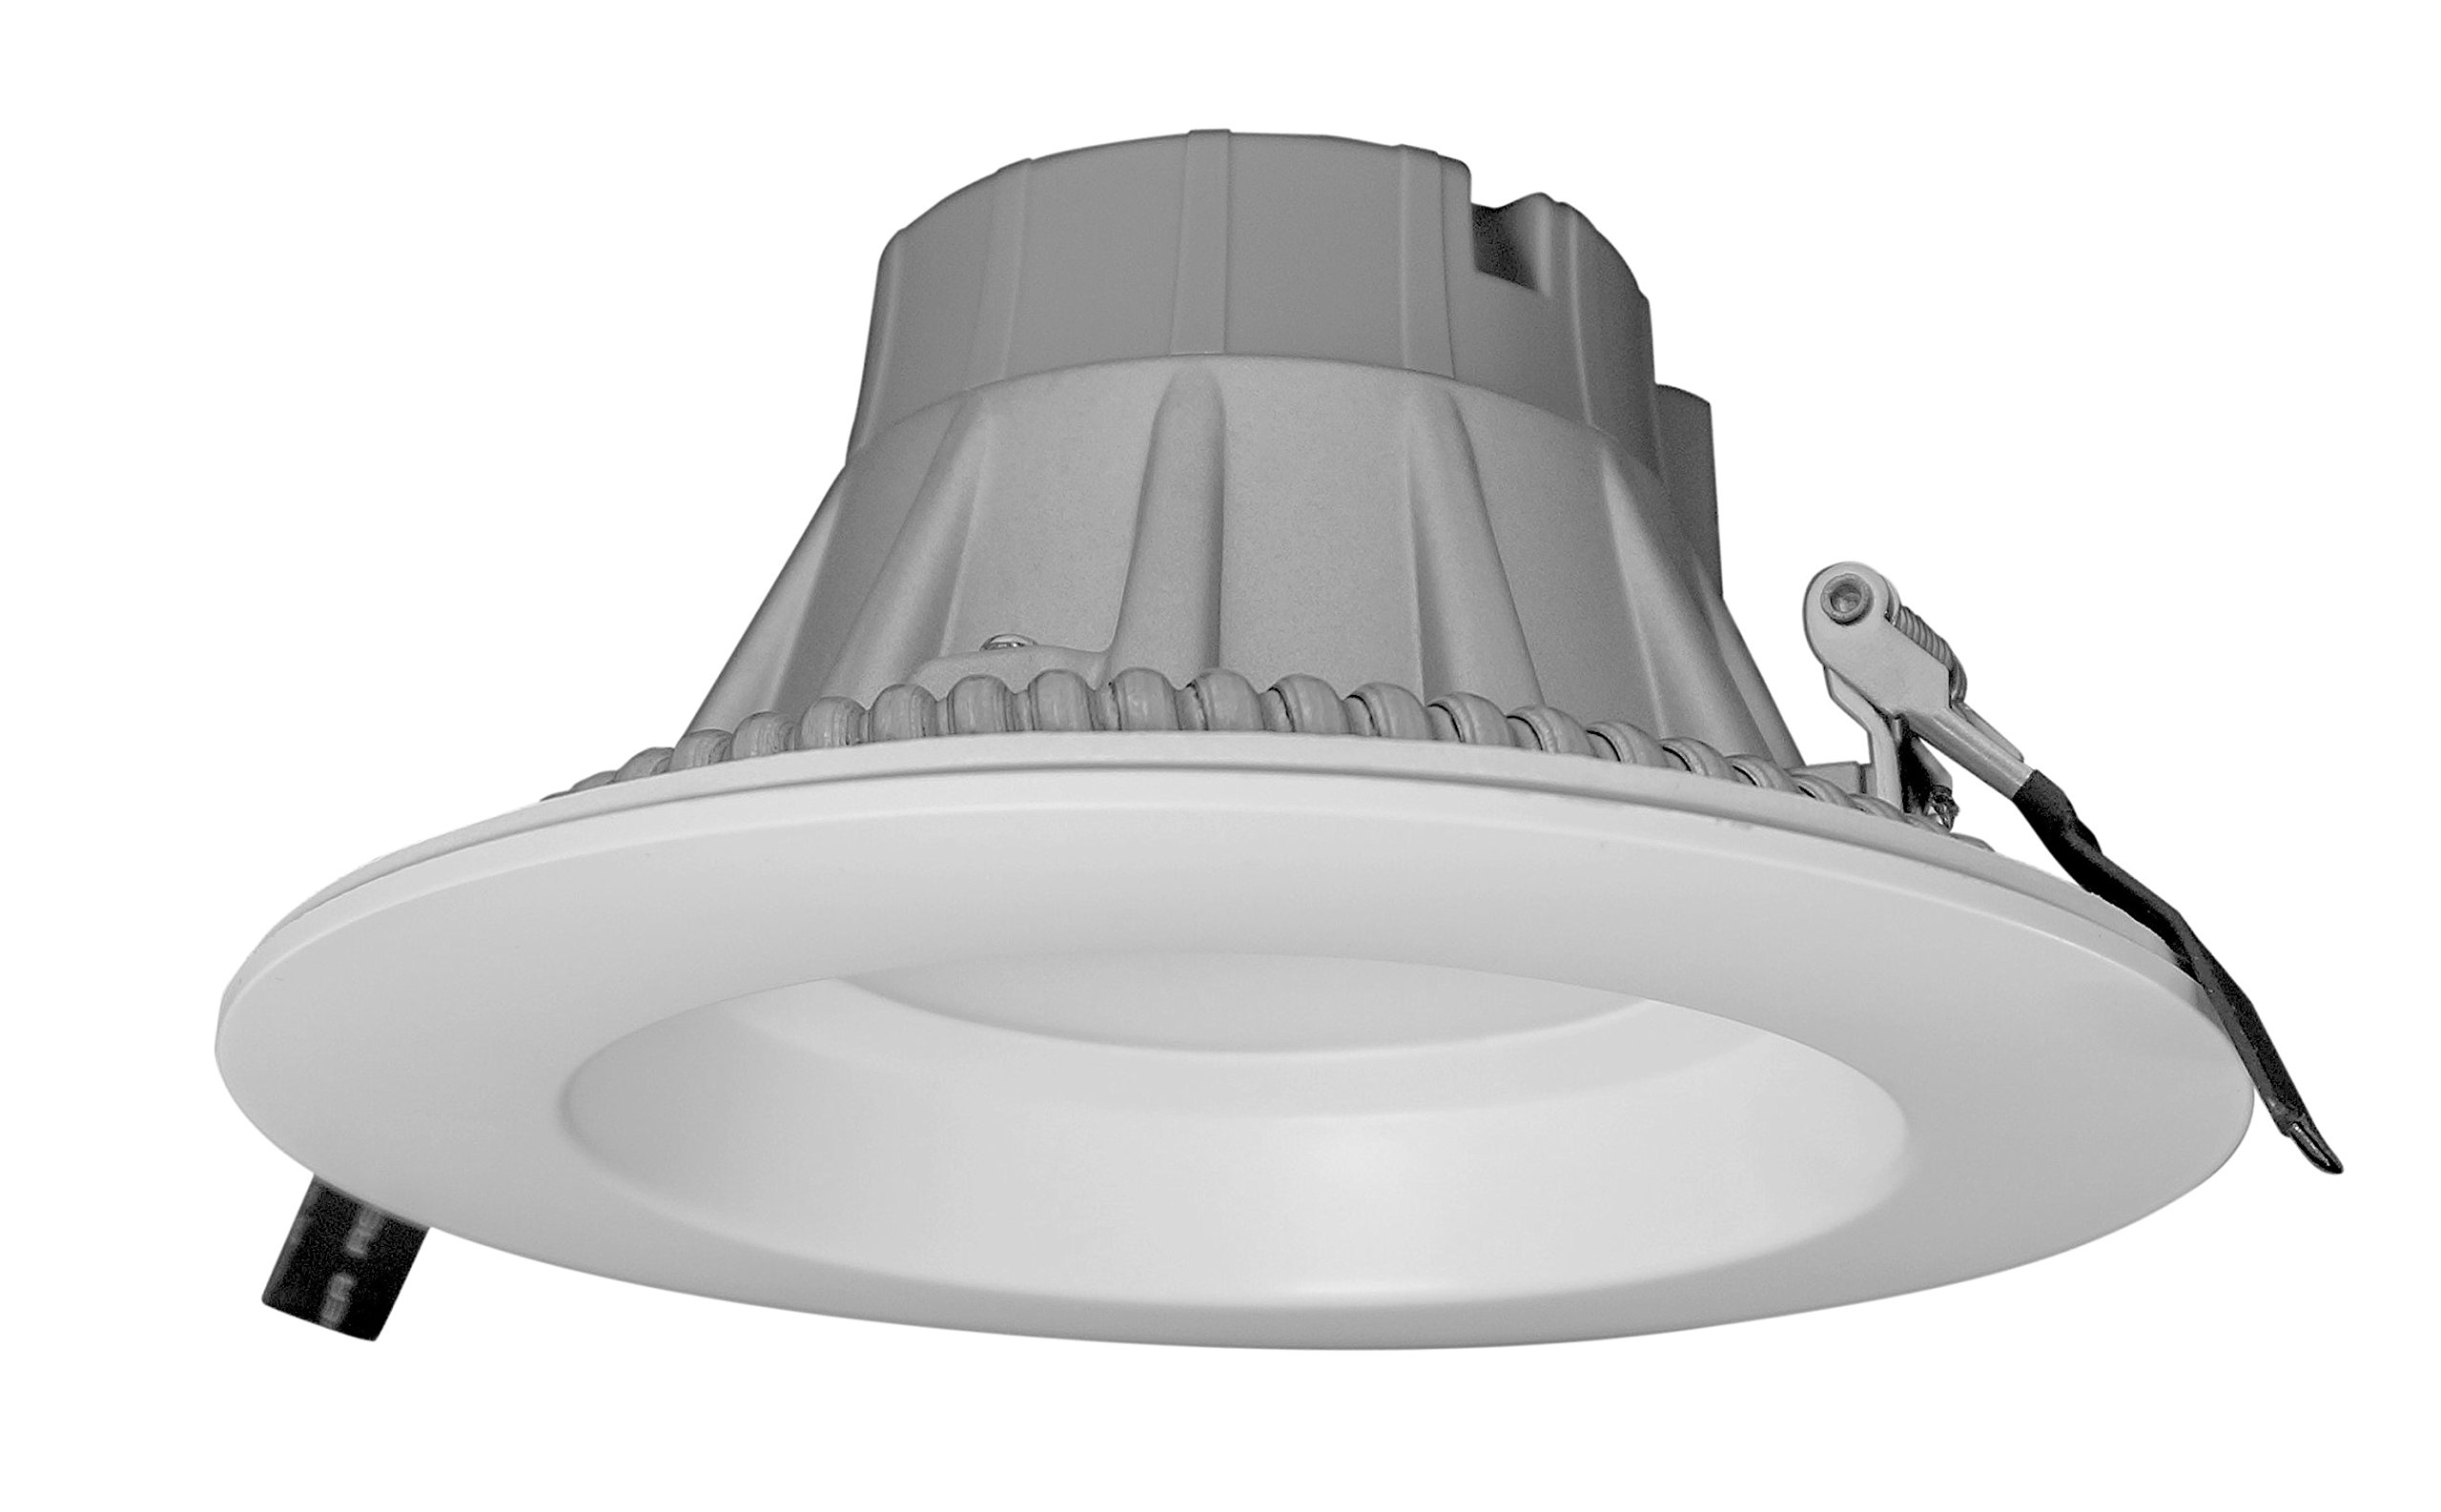 NICOR Lighting Dimmable 3000K Commercial LED Recessed Downlight Retrofit Kit, White (CLR6-10-UNV-30K-WH)